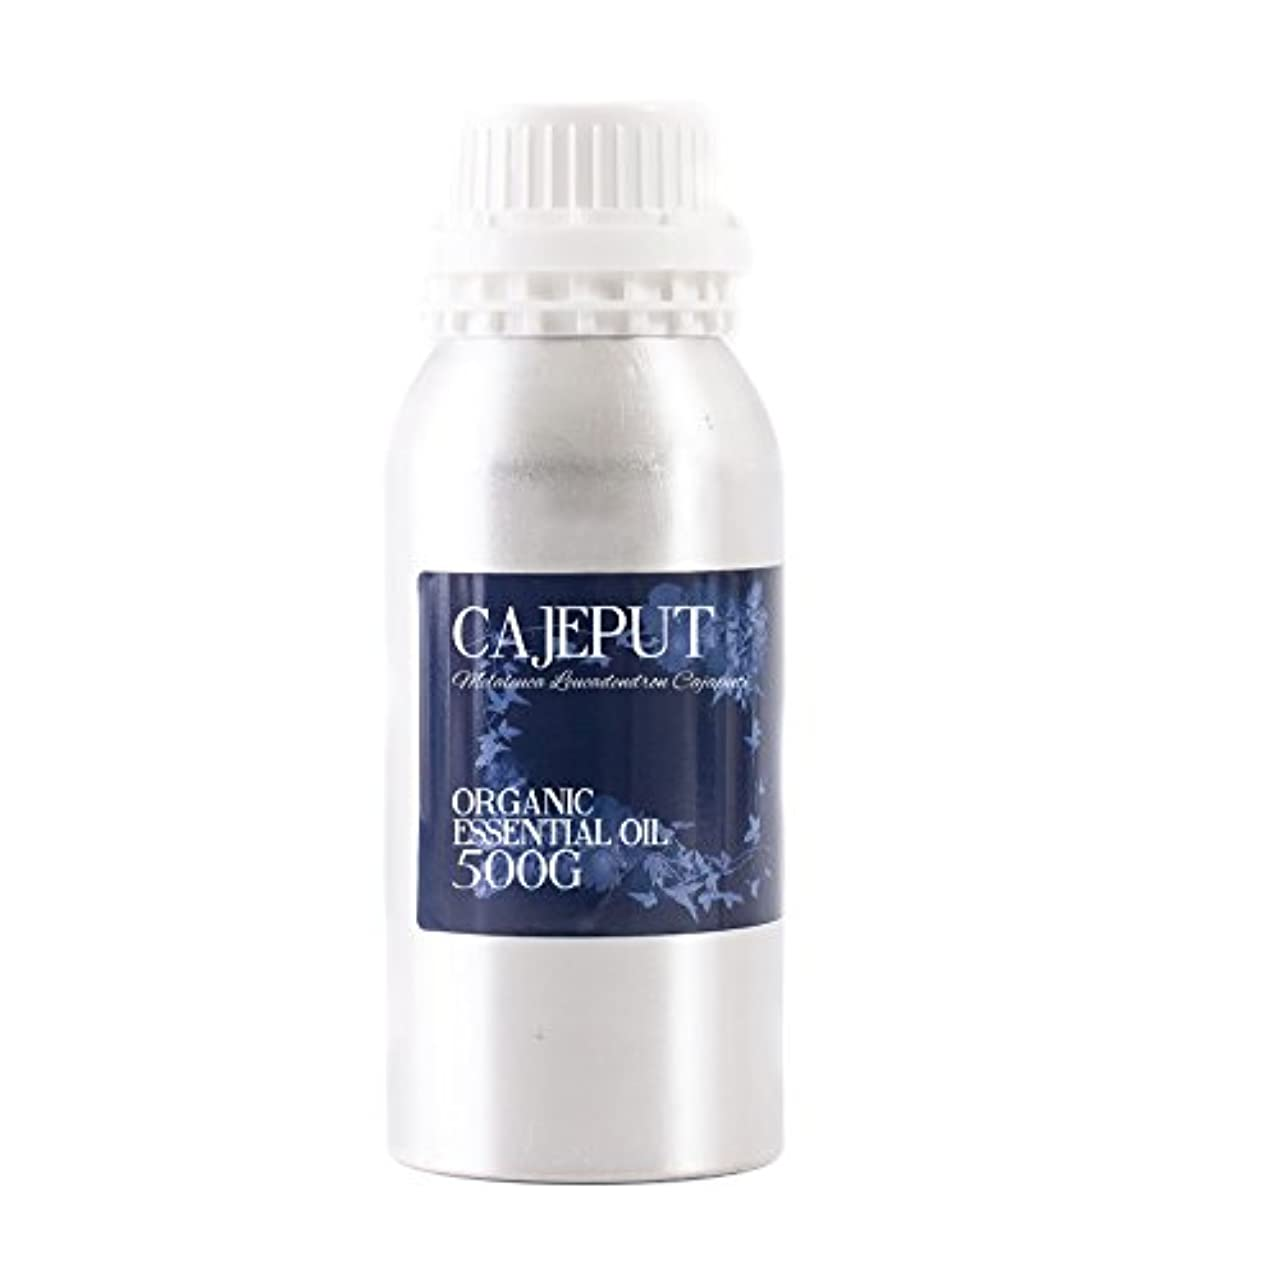 ヘビマーカー著作権Mystic Moments | Cajeput Organic Essential Oil - 500g - 100% Pure